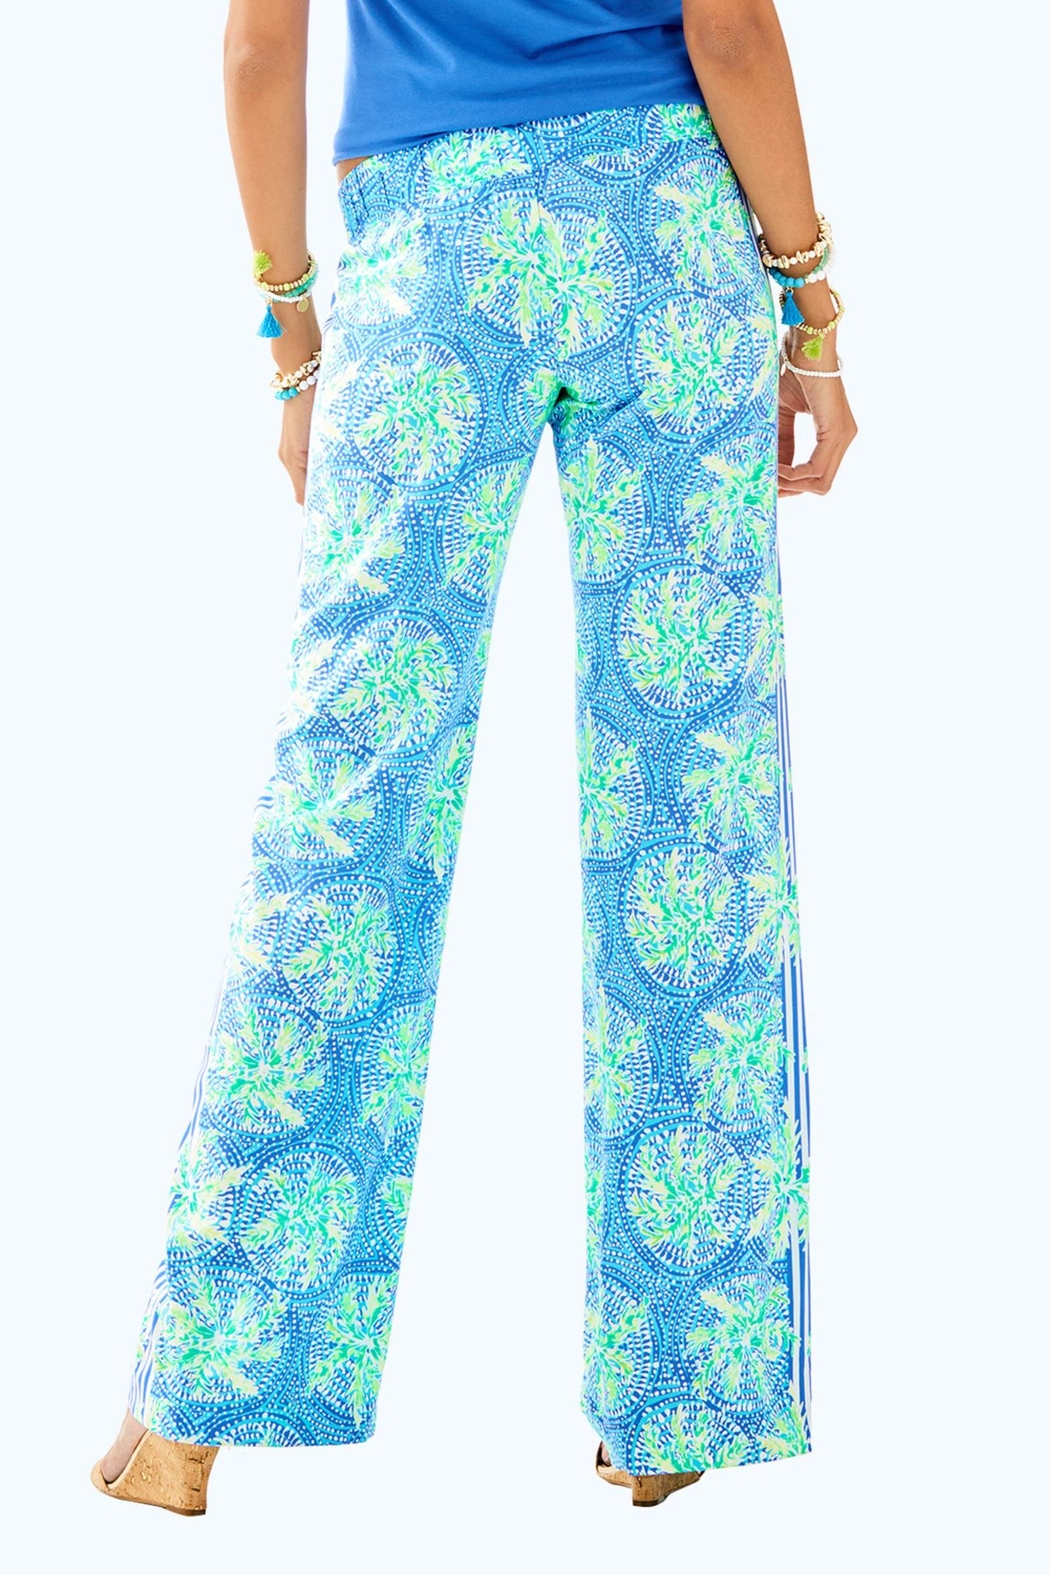 Lilly Pulitzer Bal-Harbour Palazzo Pant - Front Full Image